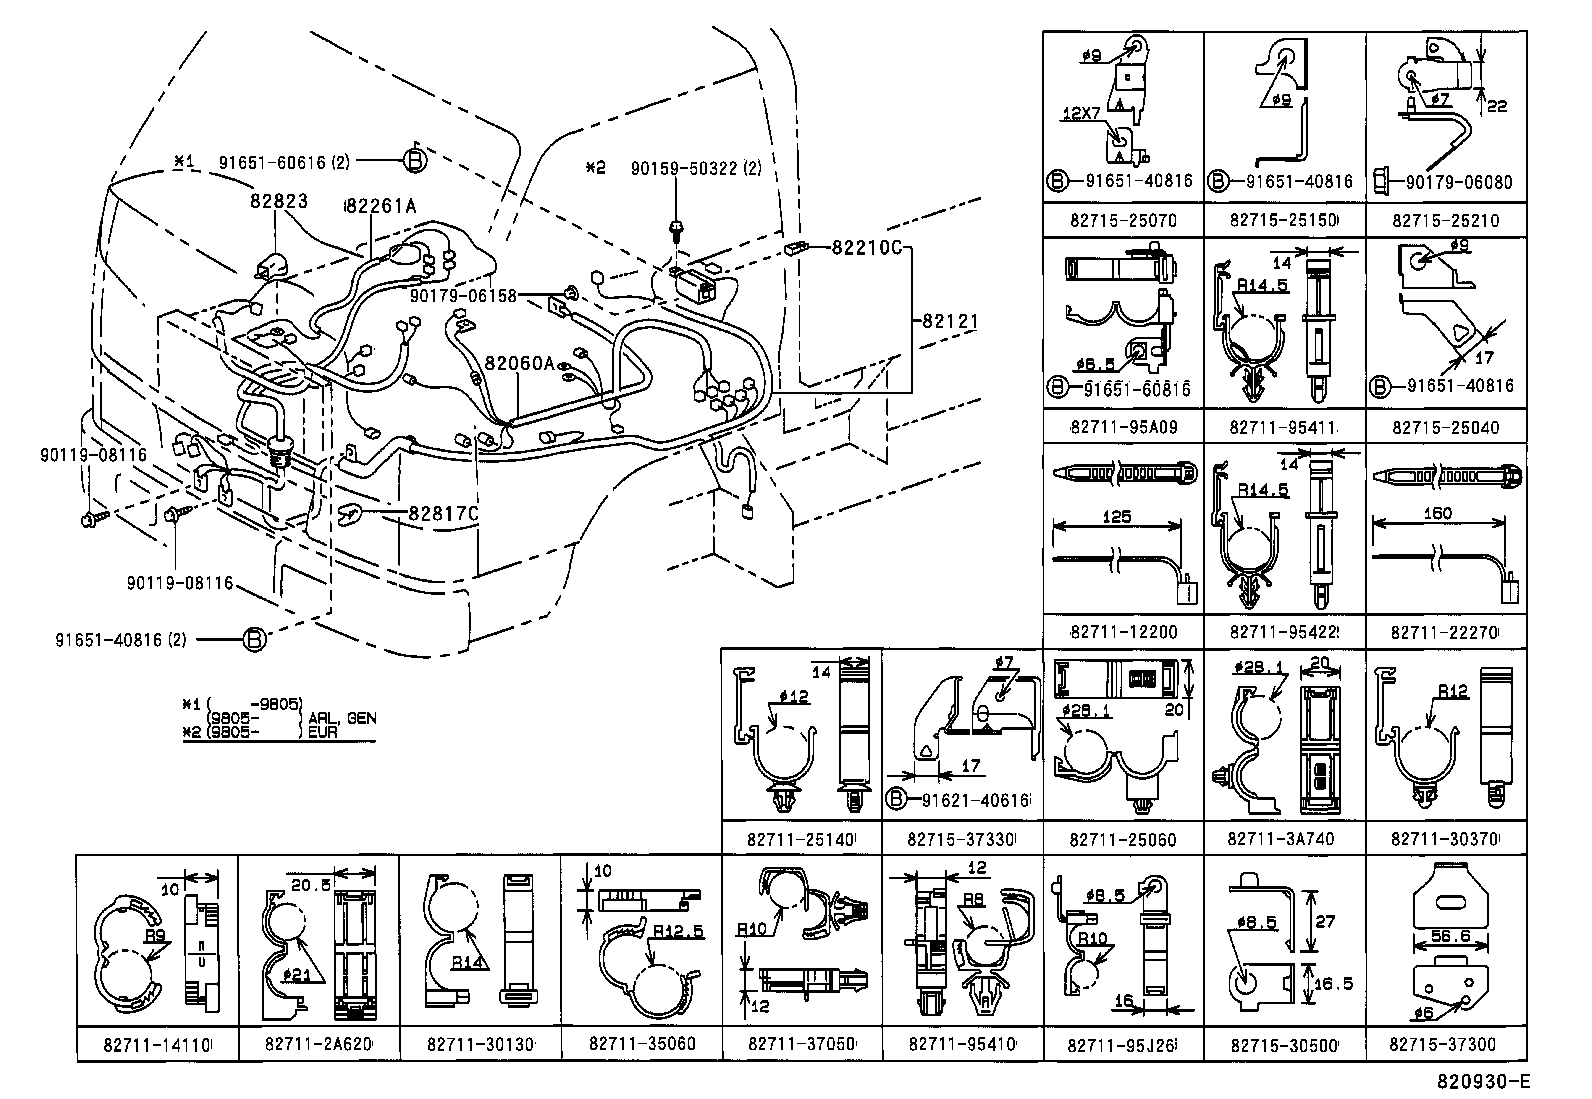 Toyota Dyna Wiring Diagram : 26 Wiring Diagram Images